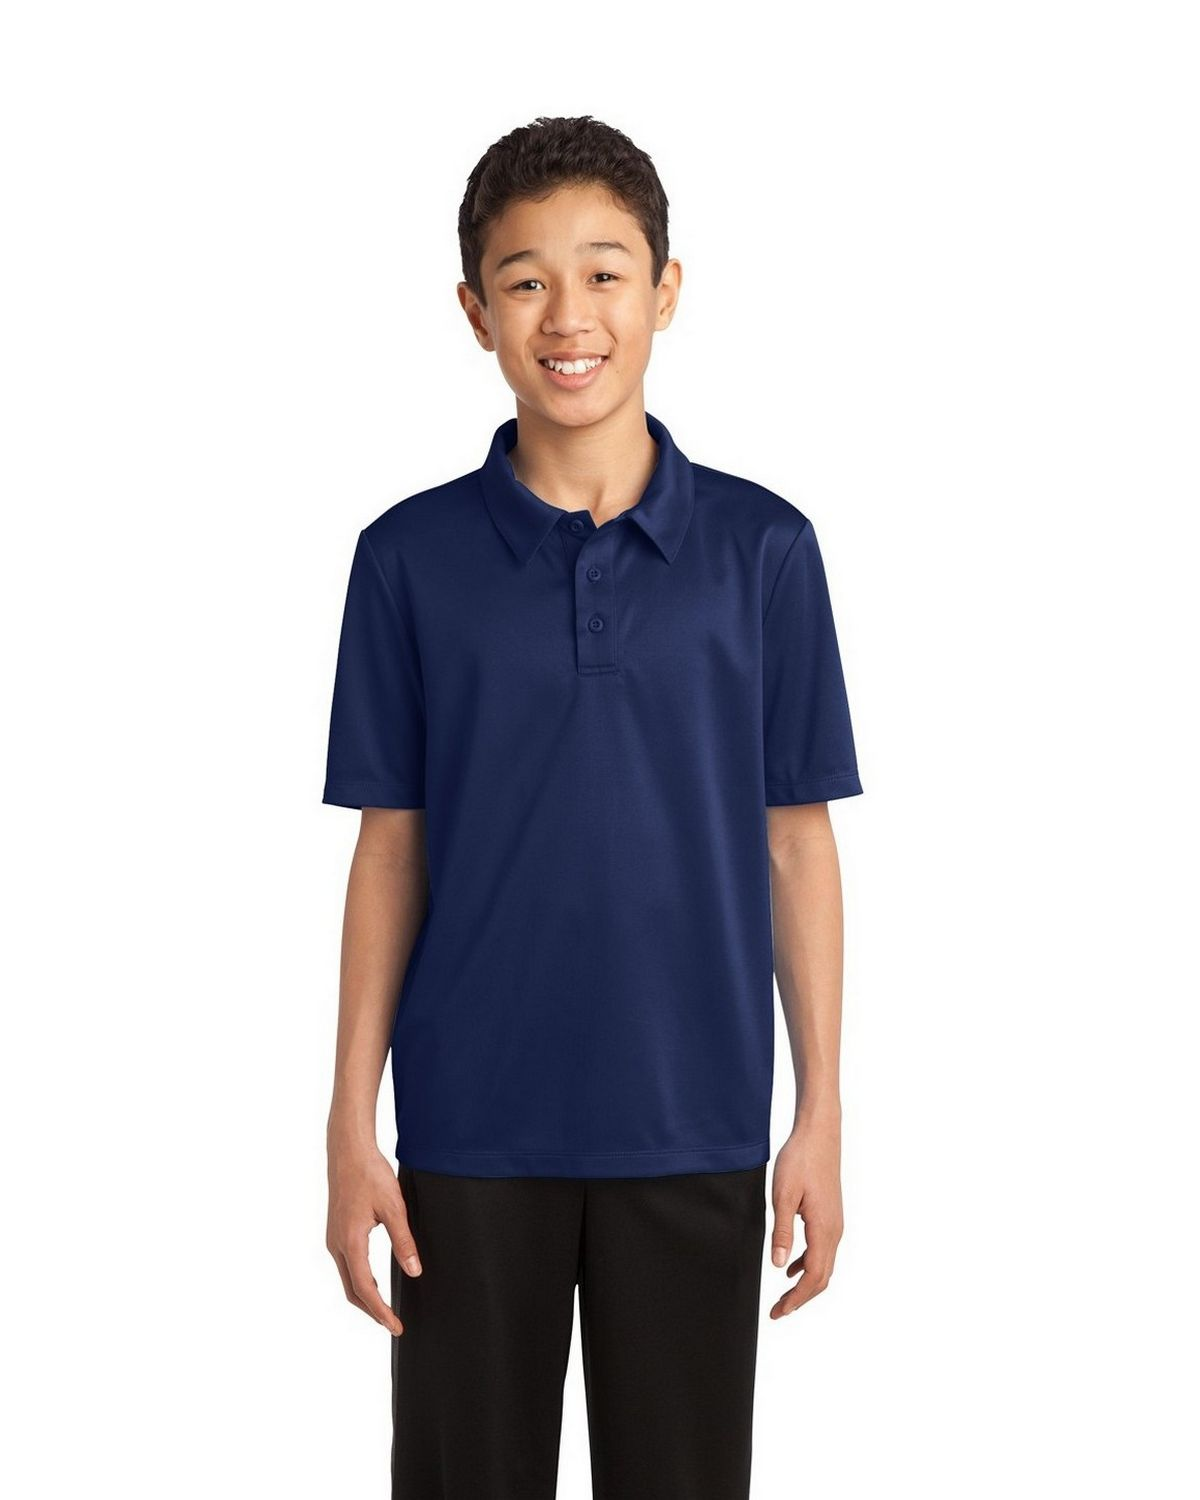 Port Authority Y540 Youth Silk Touch Performance Polo - Navy - XS #silk